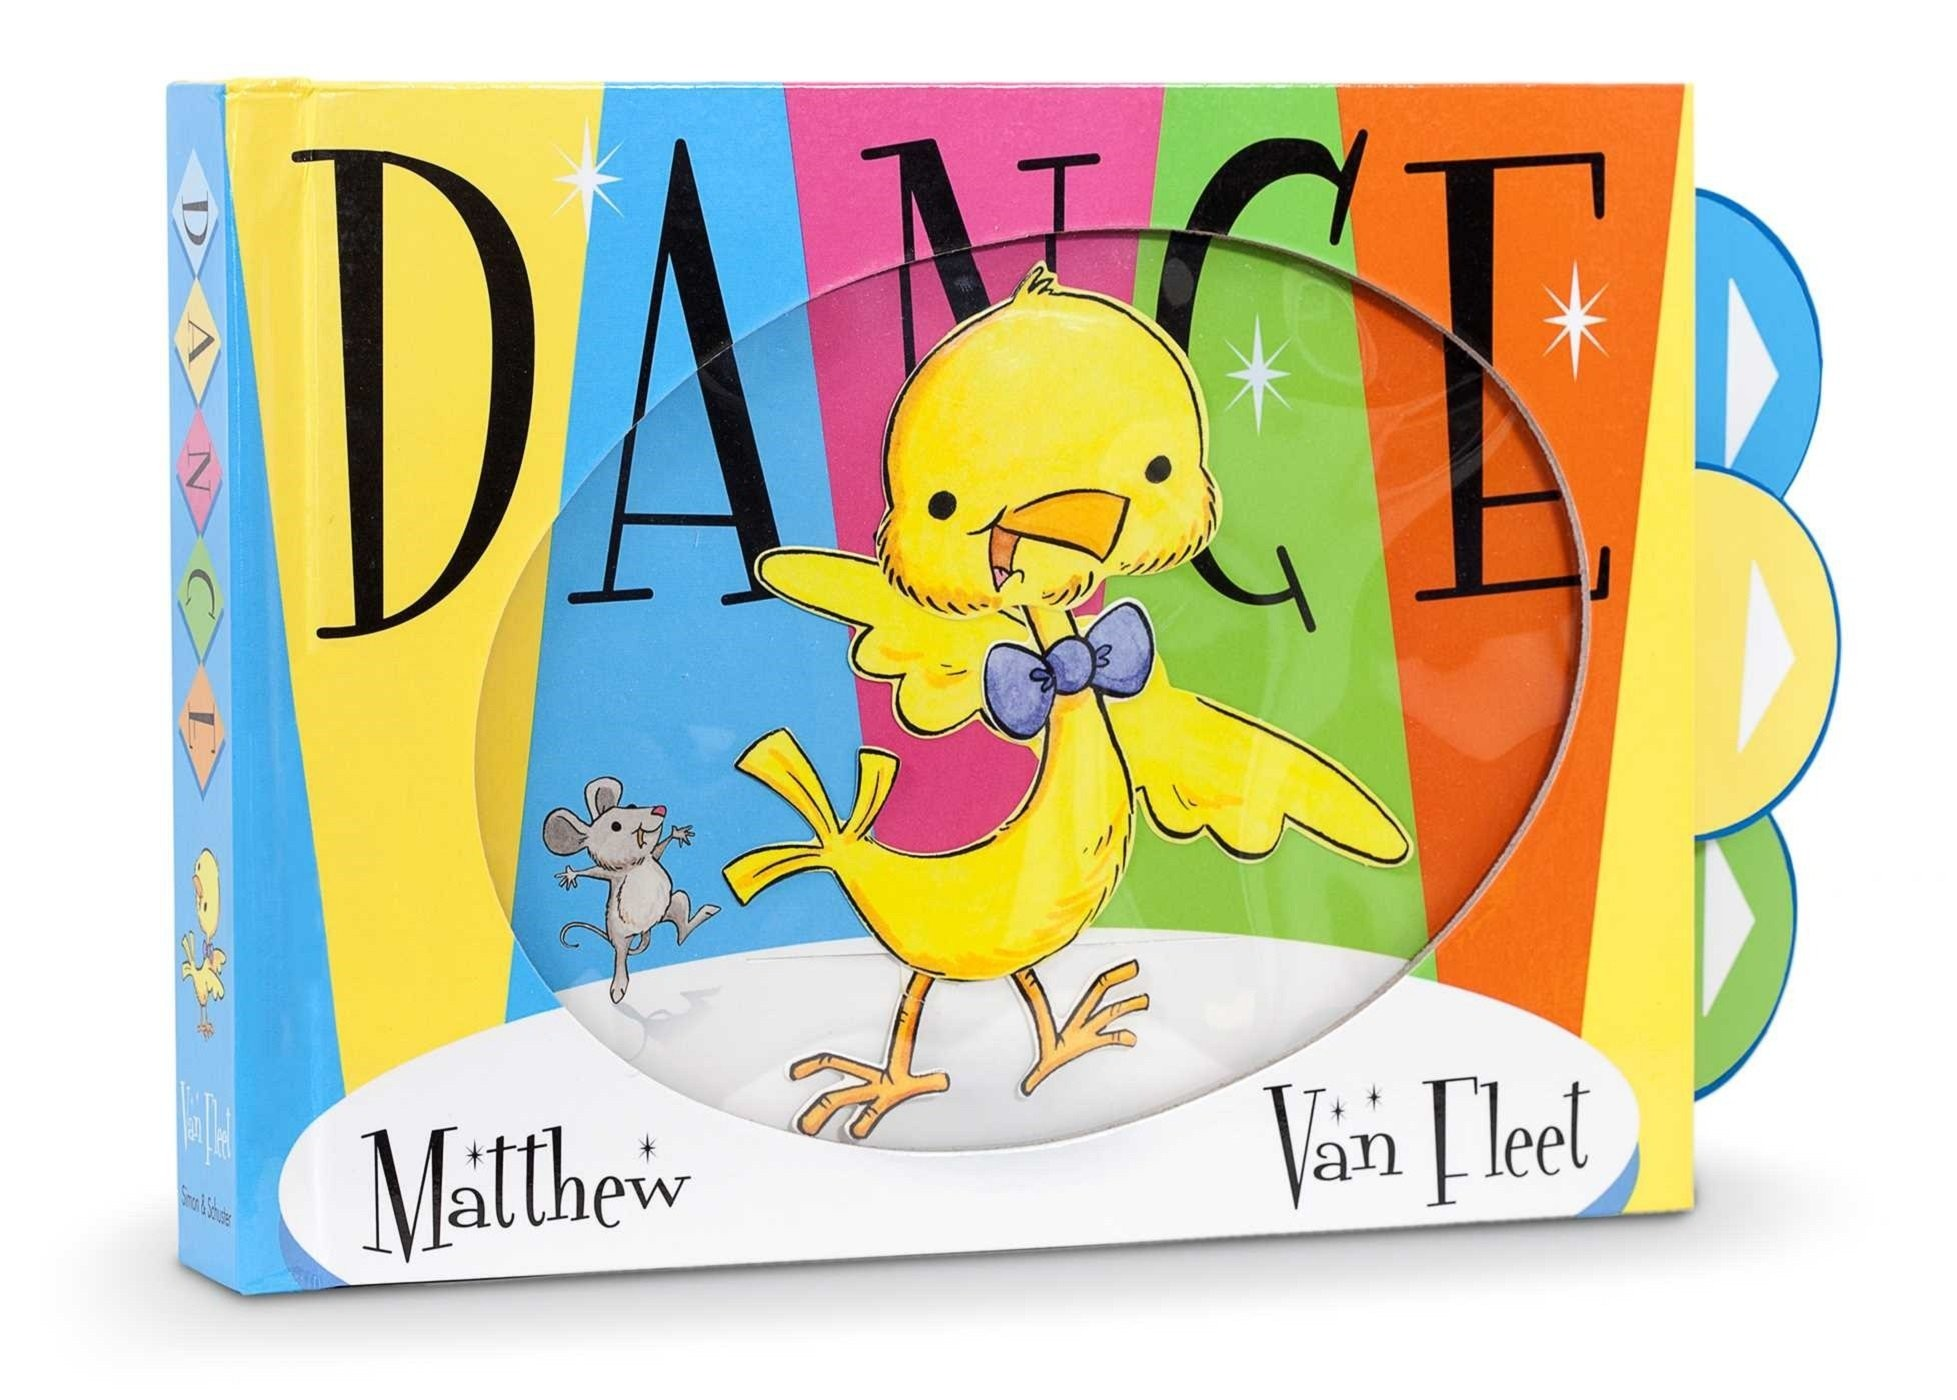 From the #1 New York Times bestselling children's book creator Matthew Van Fleet comes a laugh-out-loud, jazzy story of a little baby chick who learns how to dance from a friendly band of animals who know all the right moves!Shake, shake, shake, shimmy, shimmy, shake! You can dance! Young readers will delight in the charming art, jazzy text, and in pulling the five sturdy pull tabs to make the different animals bounce, shake and bop as they dance to the Hippoppta Hula, Gator Mashed Patater, and more! Listen and dance to the song at VanFleetBooks.com. Get your dancing feet ready!